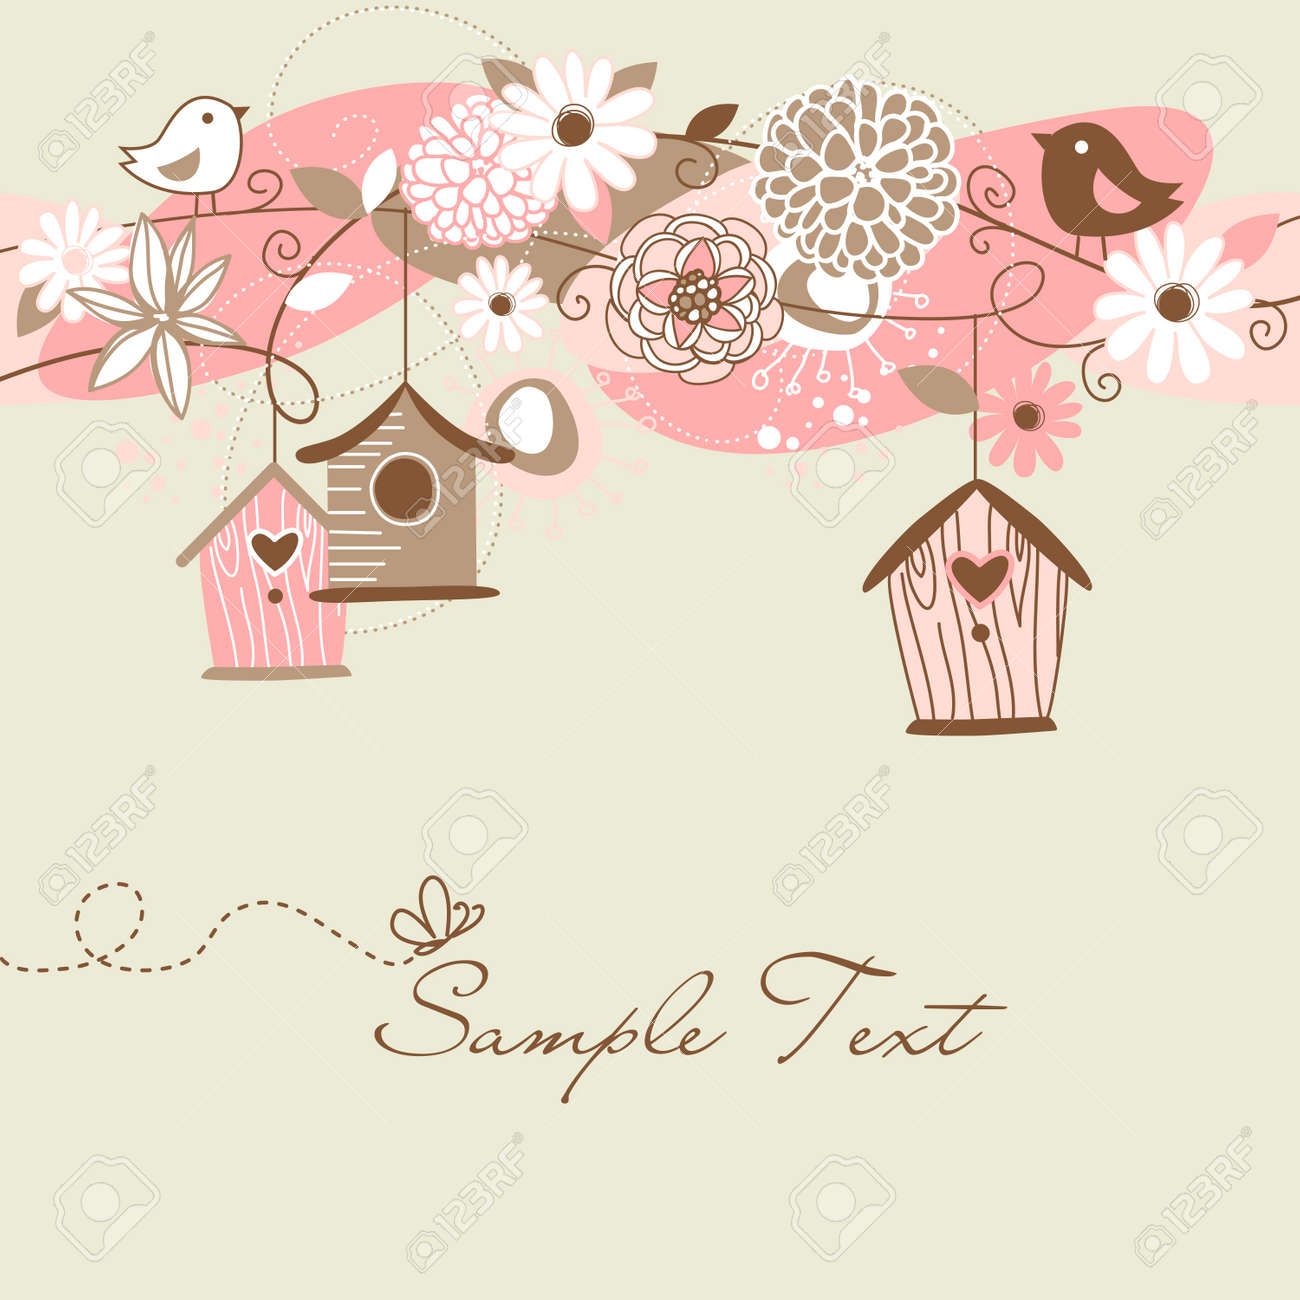 Beautiful Spring background with bird houses, birds and flowers Stock Vector - 14255086